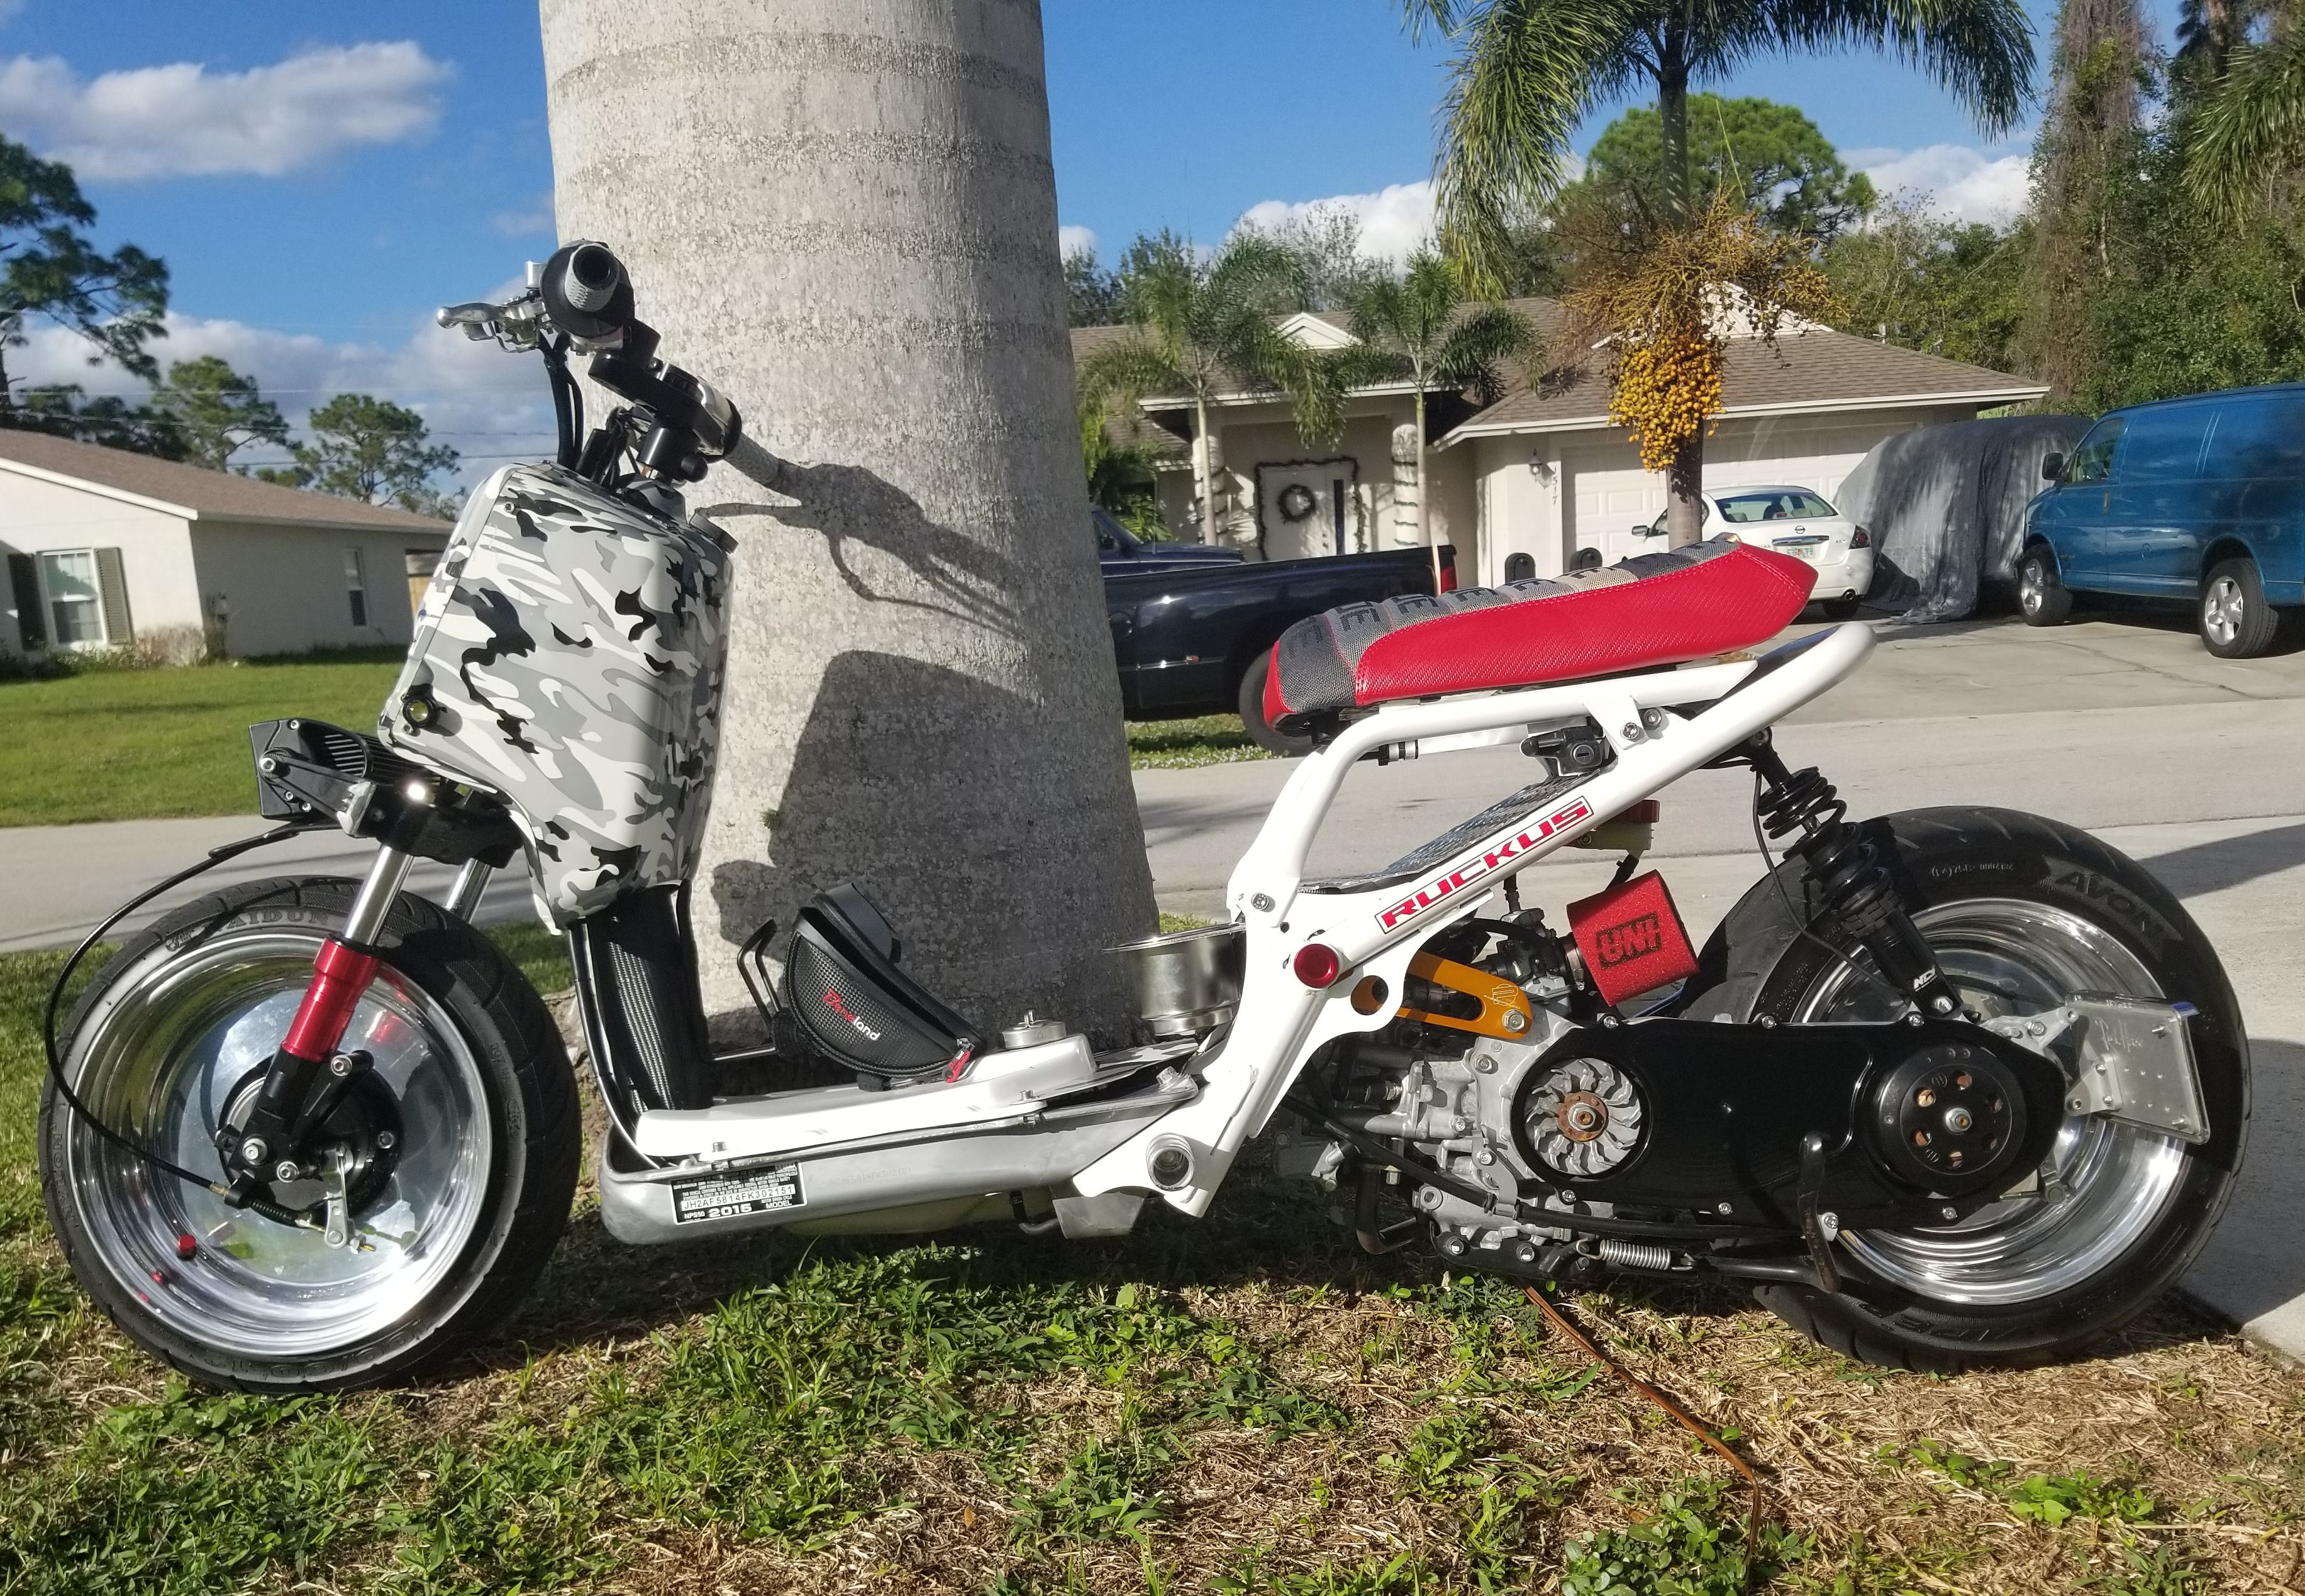 Joey S Honda Ruckus Looks Sweet And Those Palm Trees Are Making Me Think Of Sunny Weather He Went With A Bride Gradient Seat Honda Ruckus Honda Yamaha Scooter